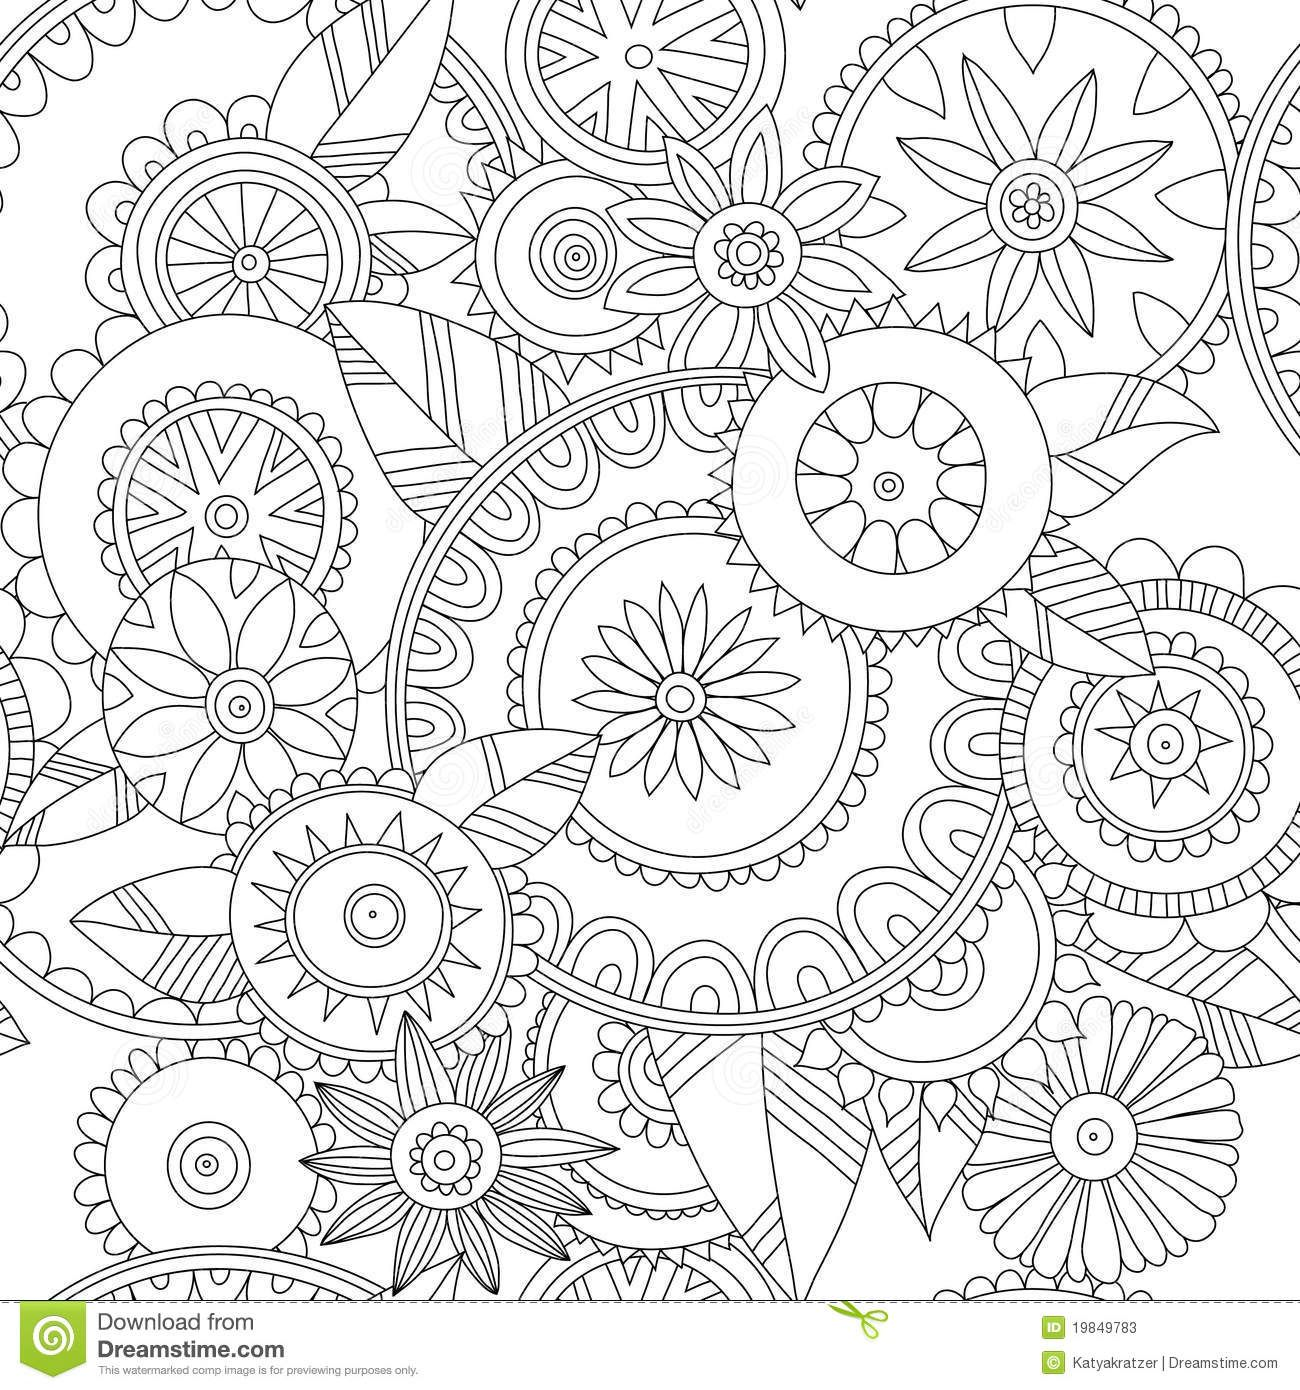 flower pattern coloring pages - photo#18